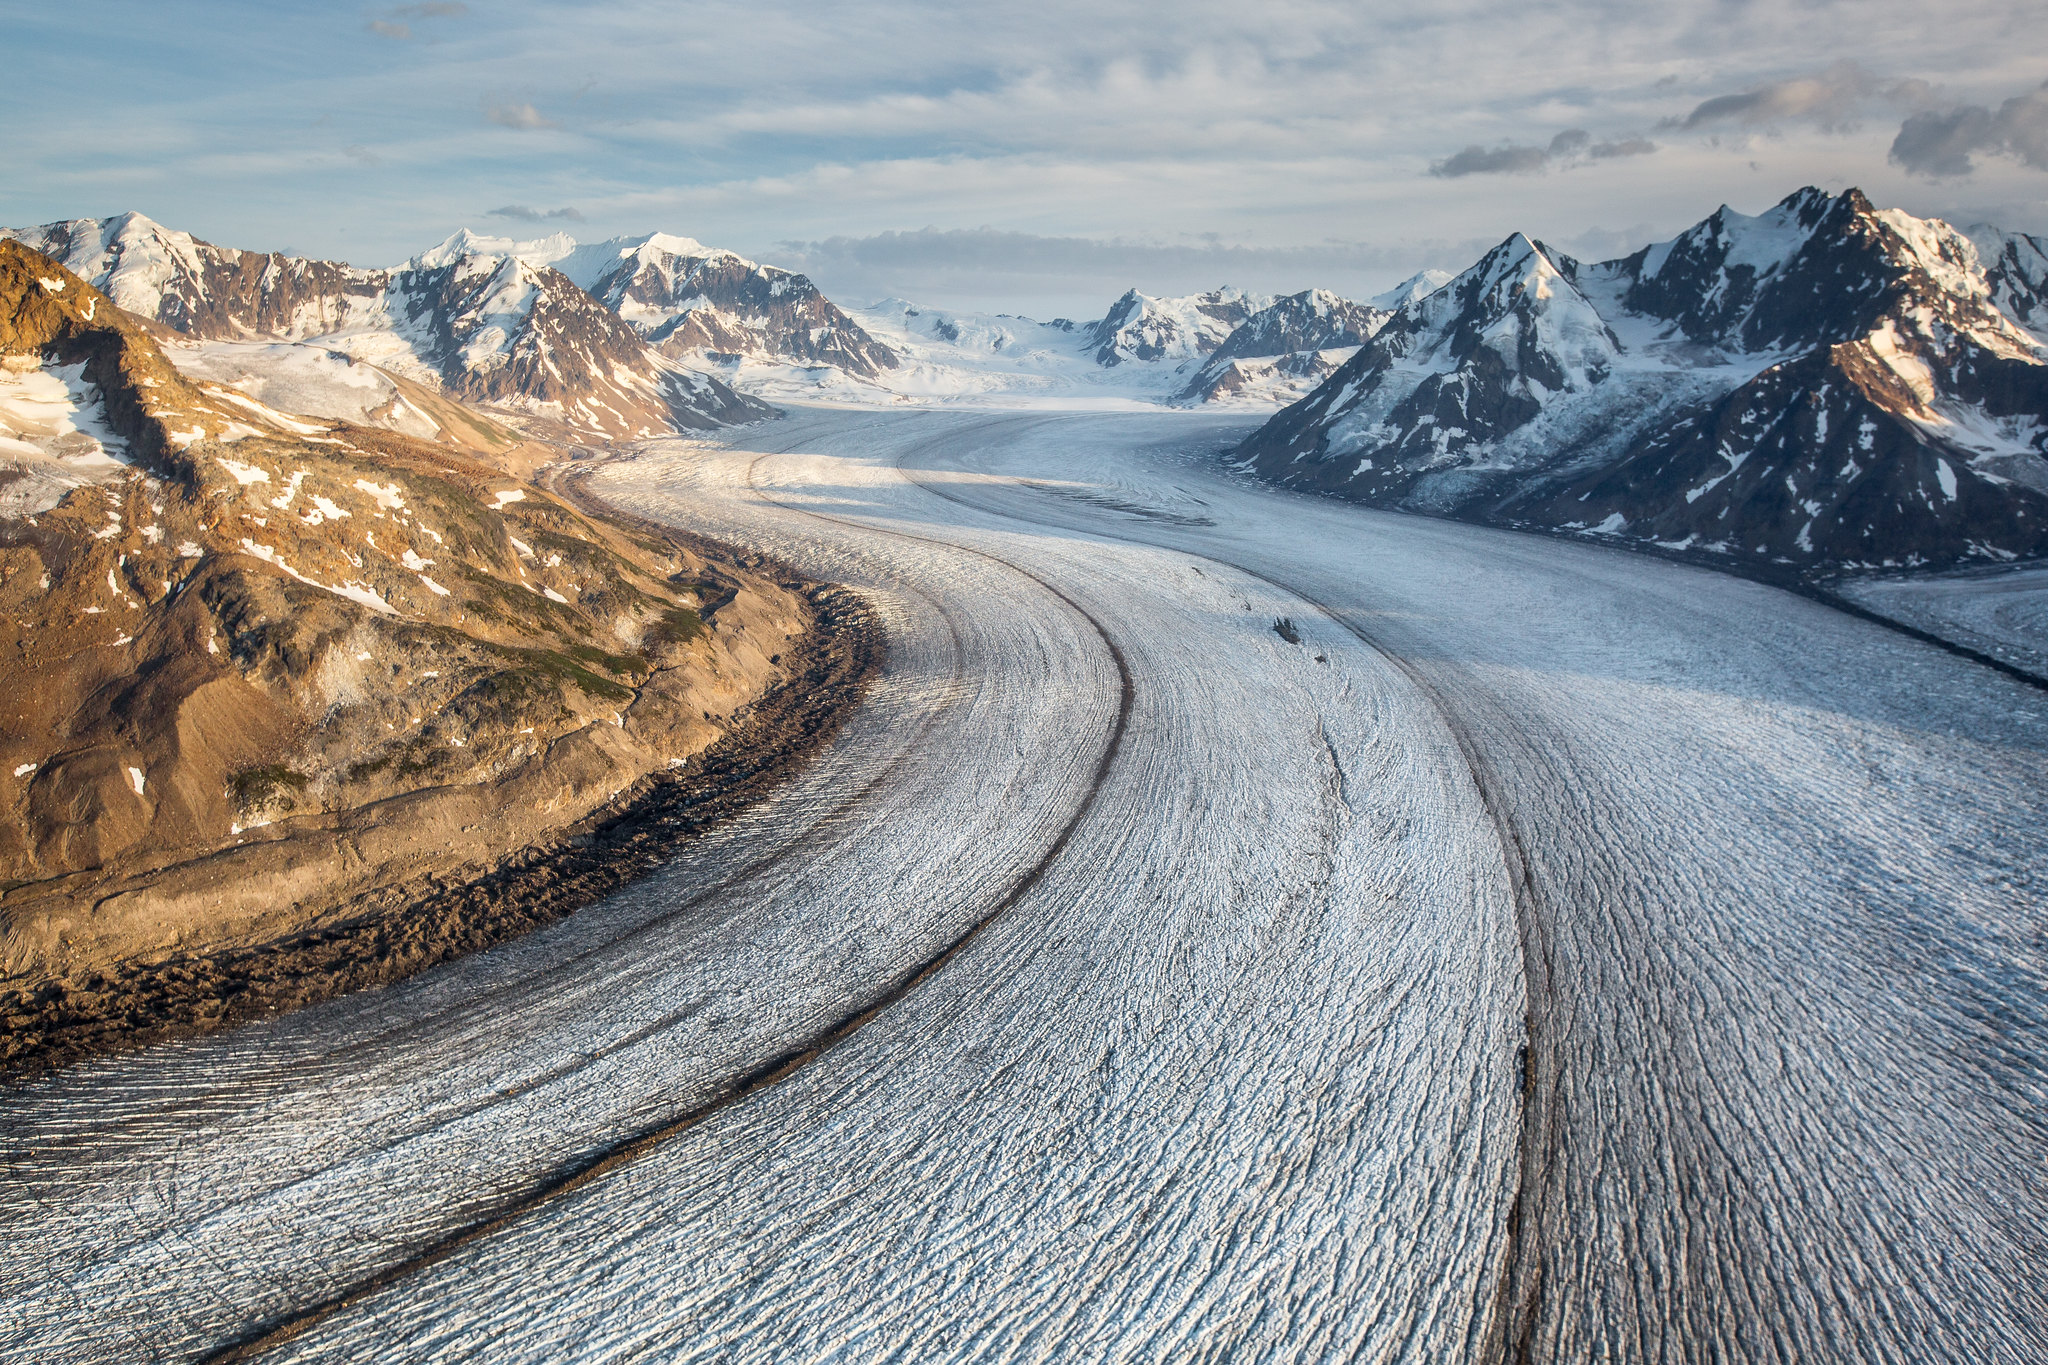 Free download high resolution image - free image free photo free stock image public domain picture -Mt. St. Elias, Mt. Miller, Bagley Icefield